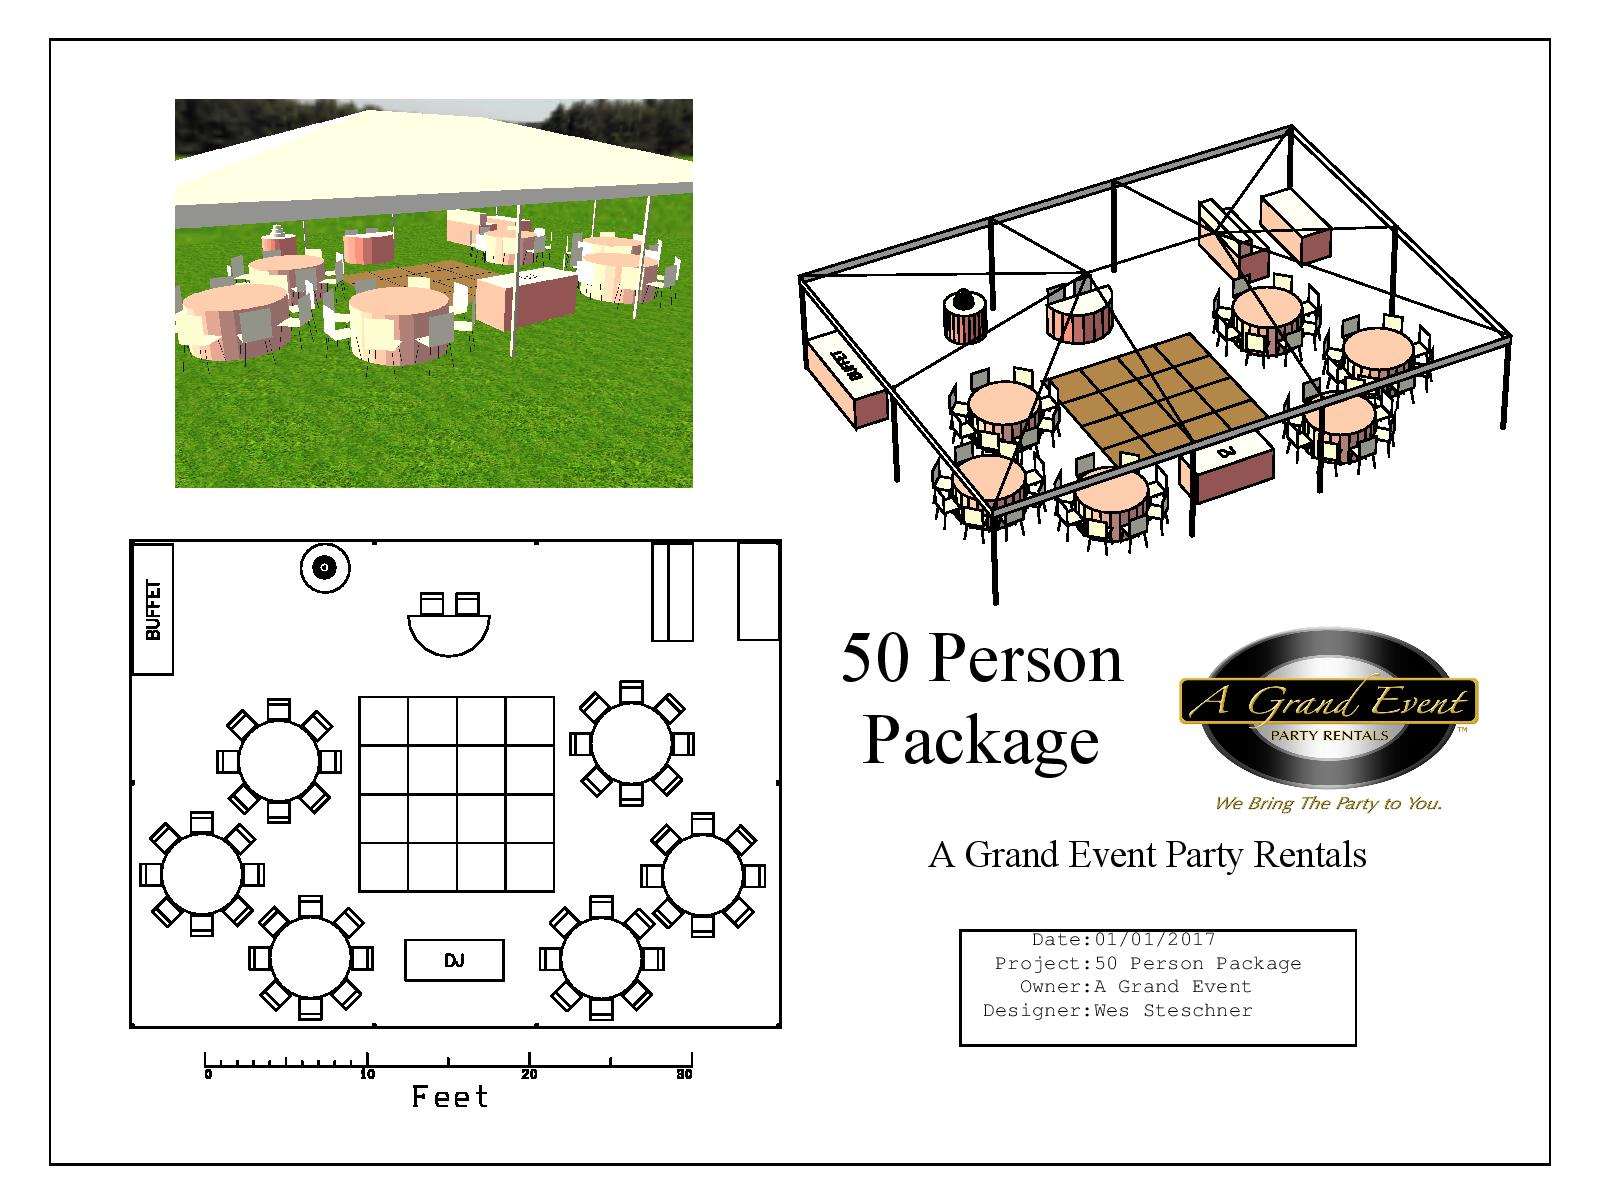 50 Person Package